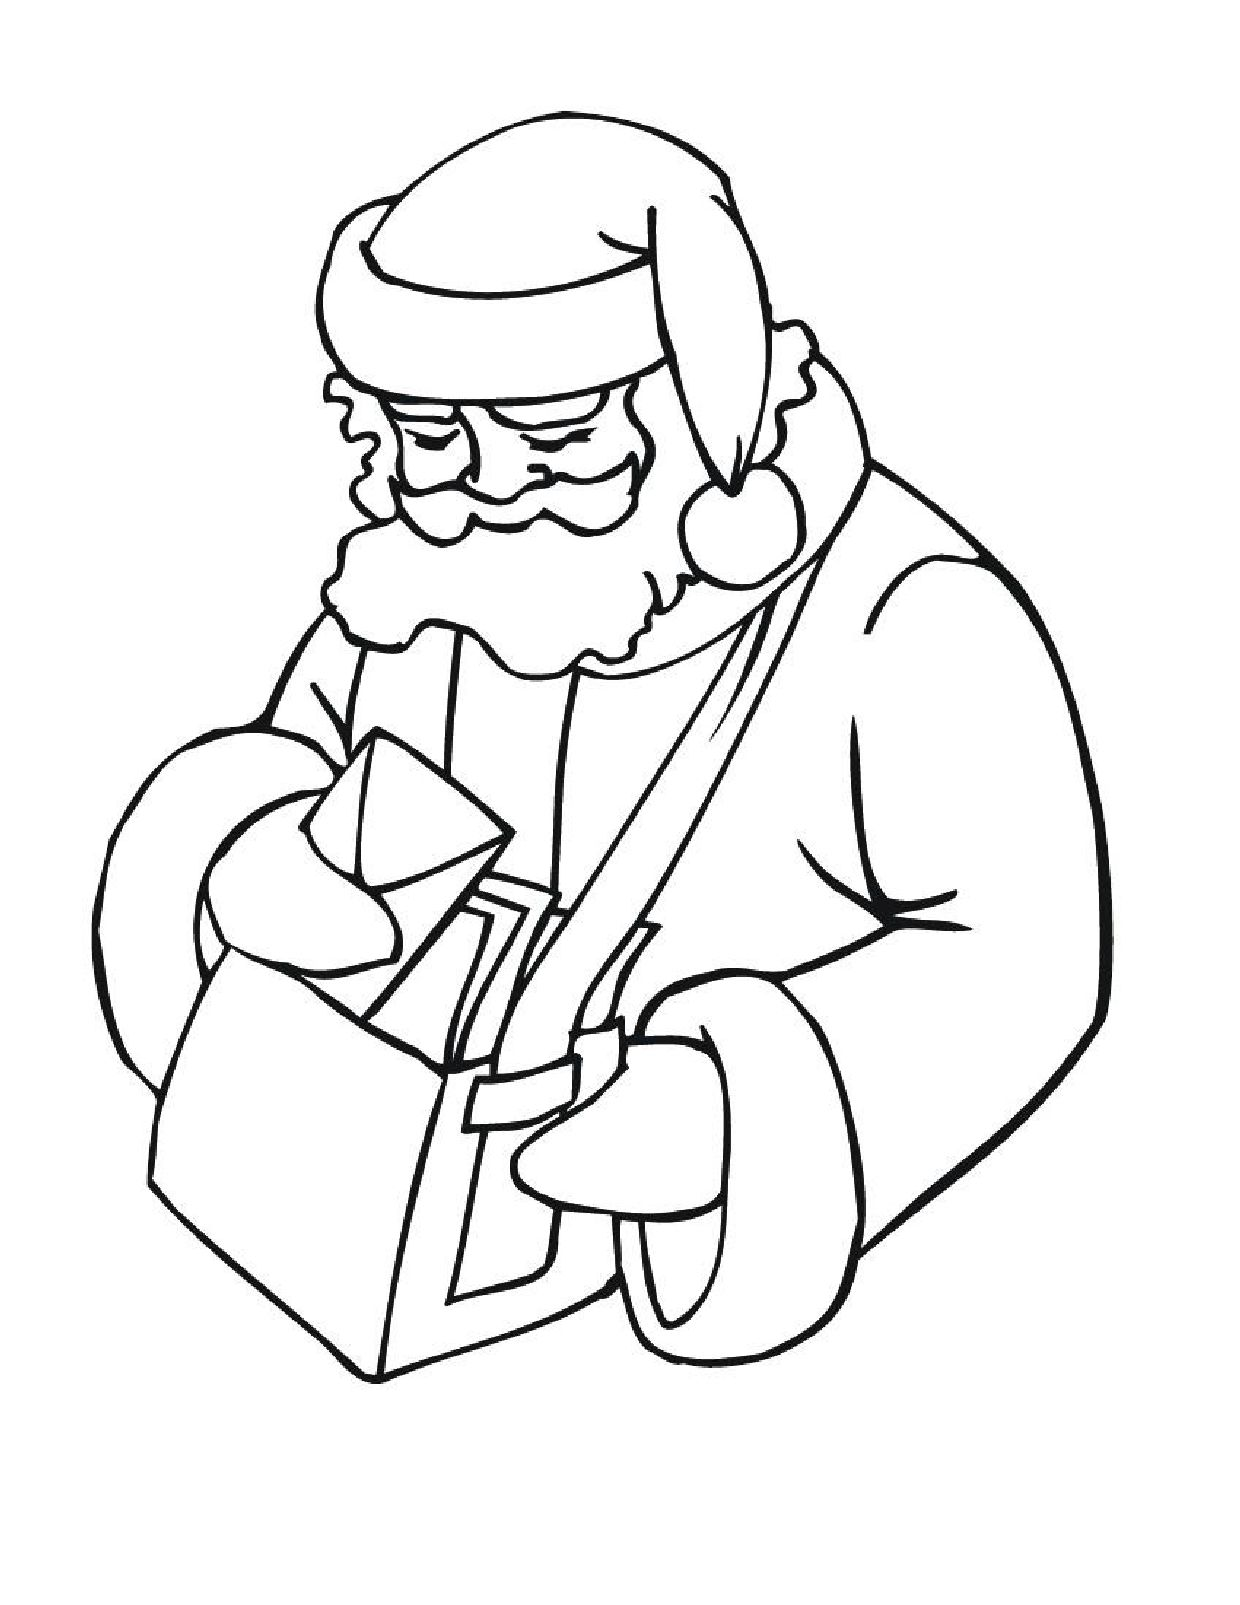 Santa S House Coloring Pages With Page Of All The Disney Pixar Movies